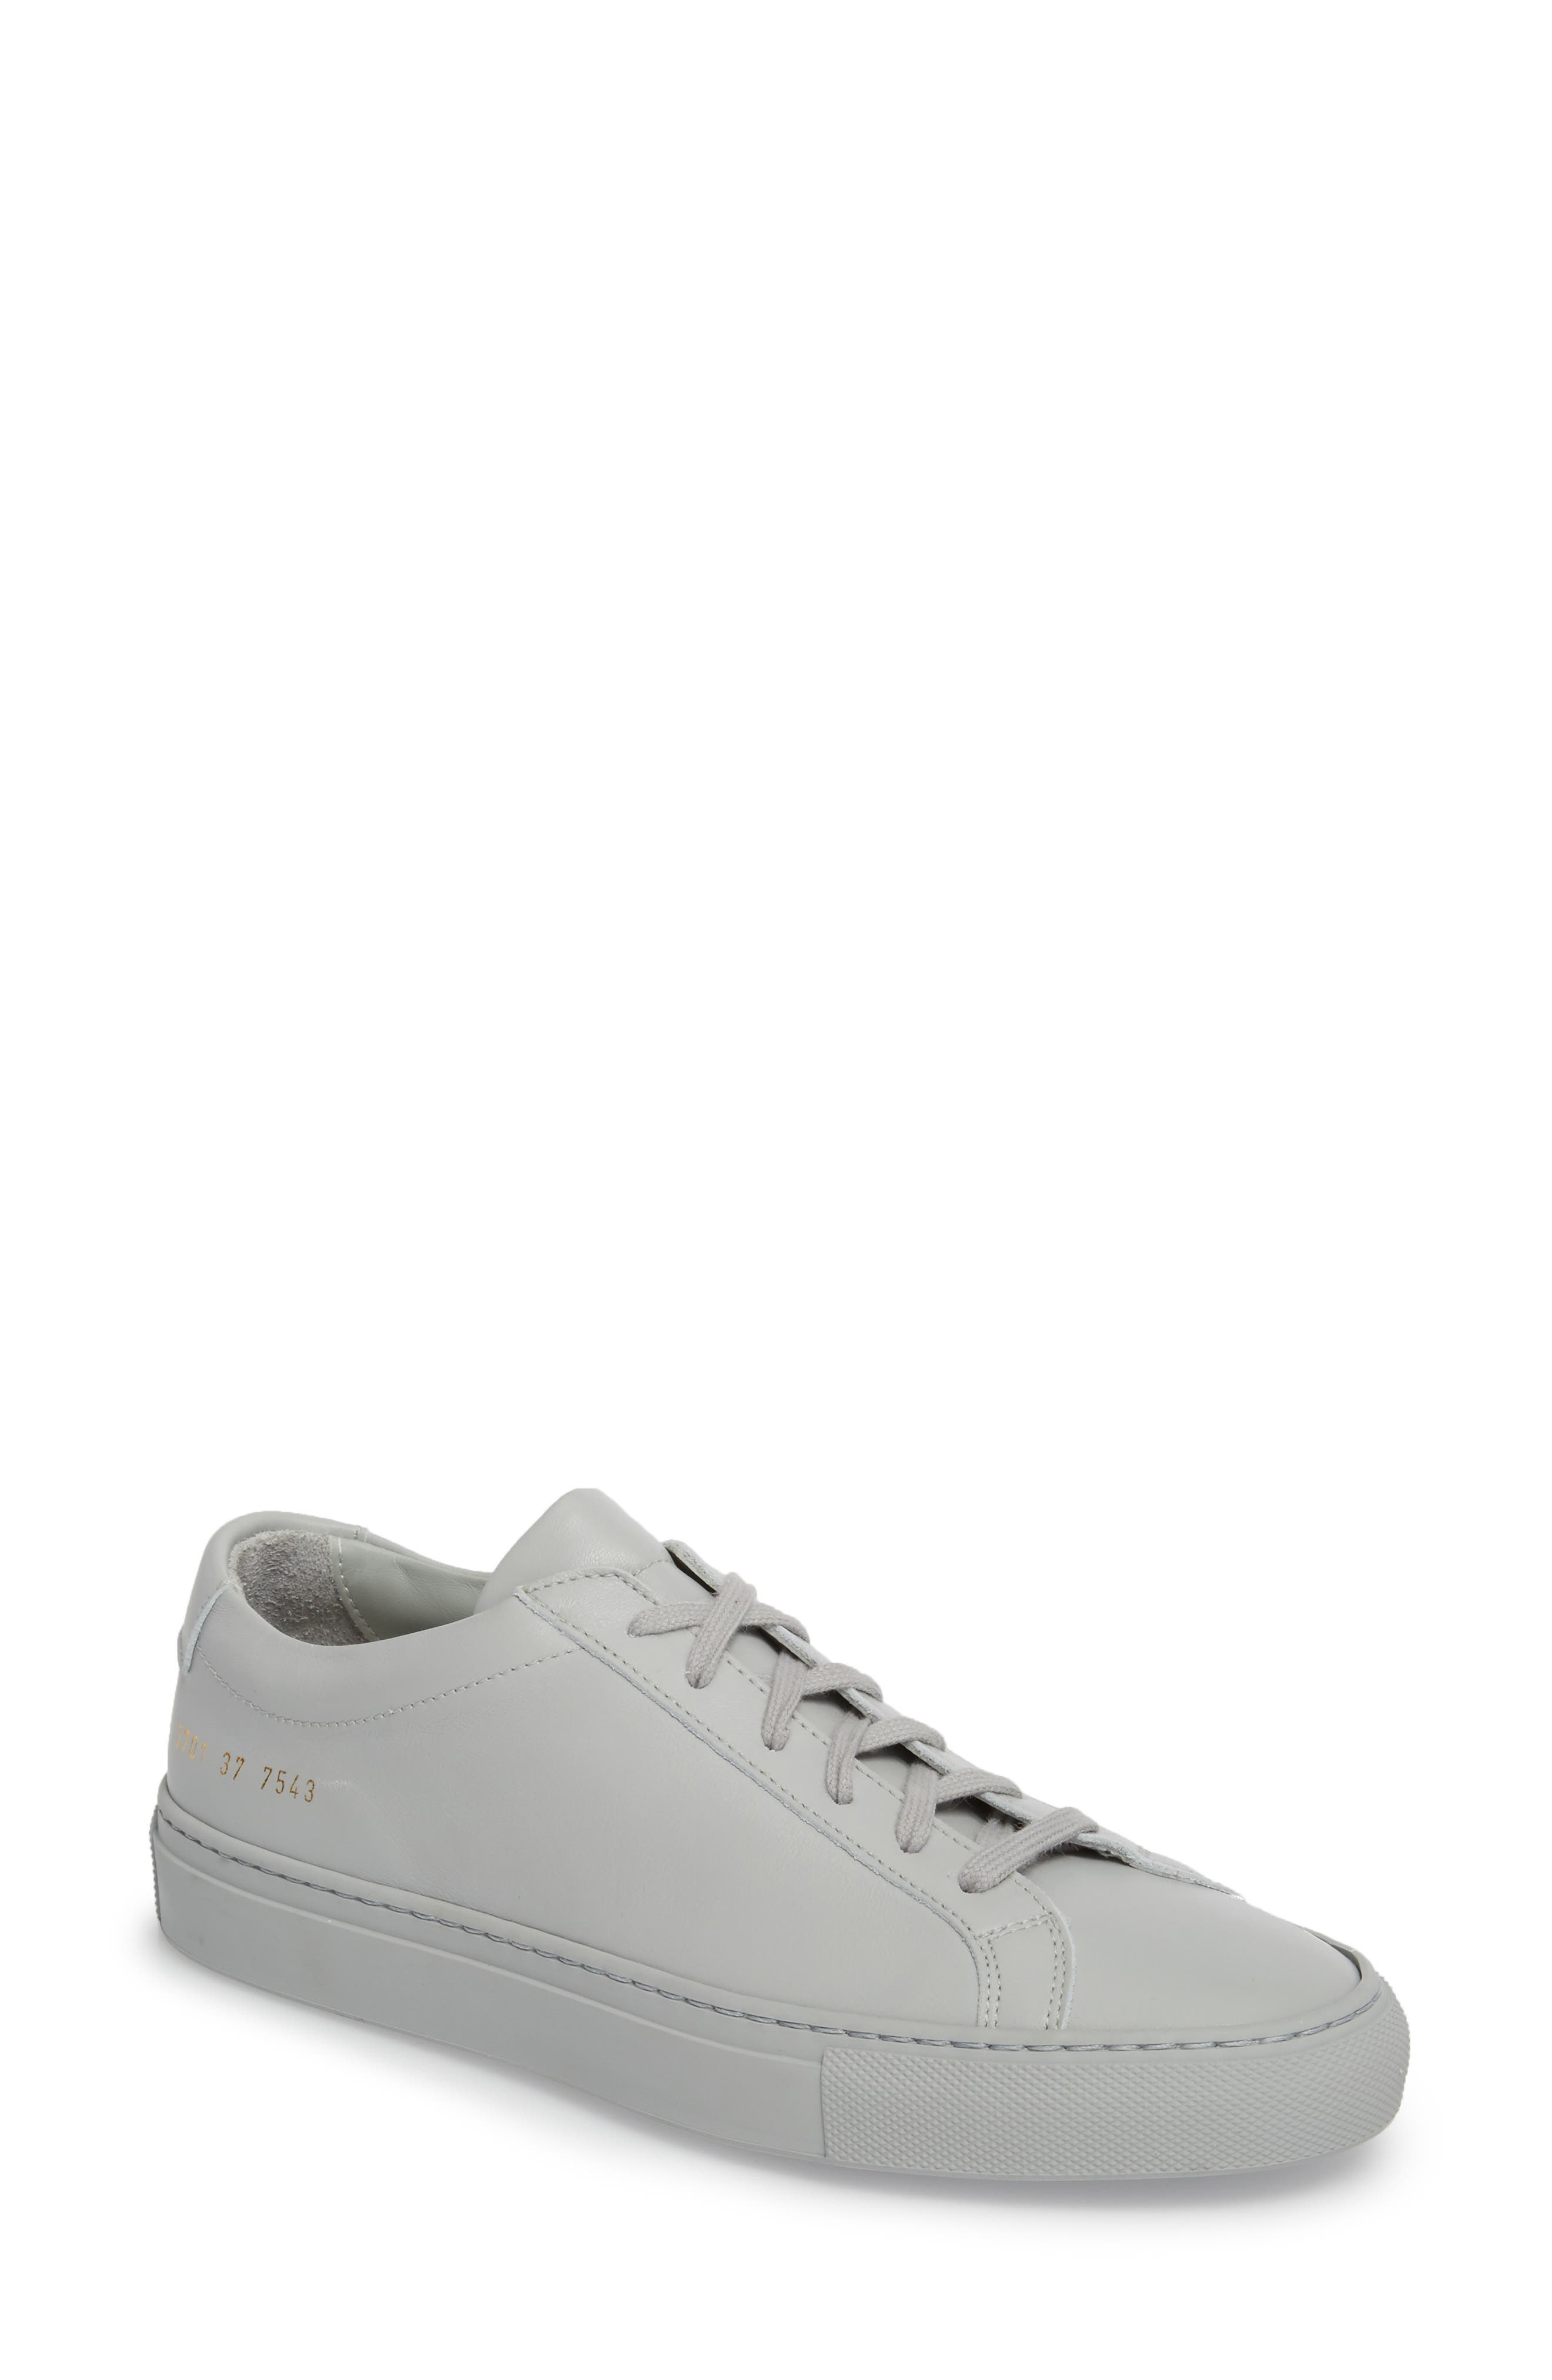 ae83b8e3568a Women s Common Projects Sneakers   Running Shoes